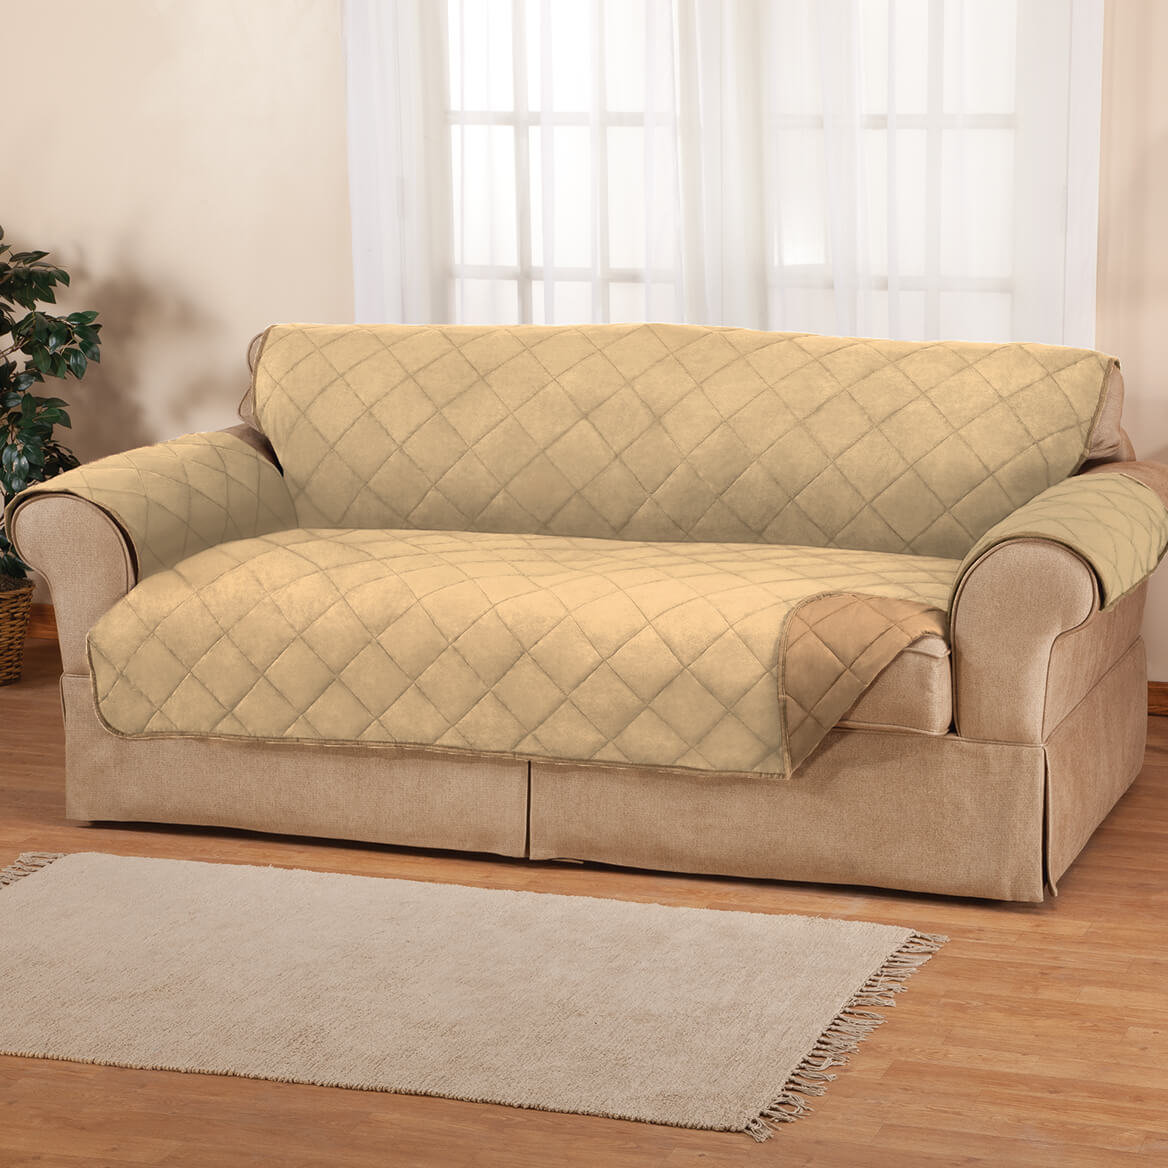 how to clean suede sofa covers thomasville sofas and chairs naomi microfiber cover by oakridge walter drake